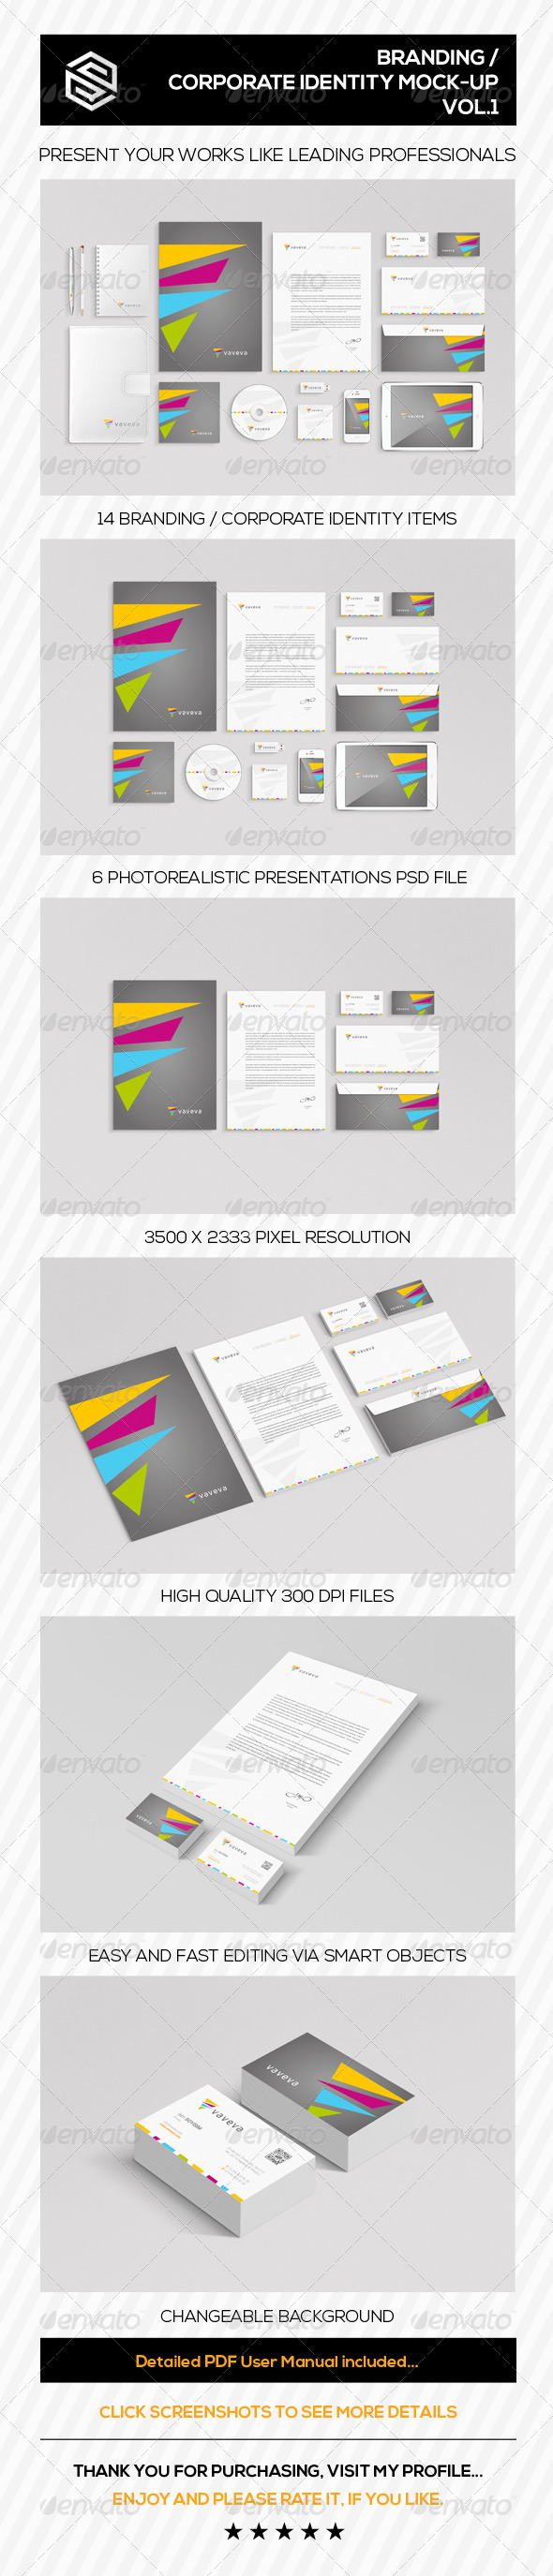 GraphicRiver Branding Corporate Identity Mock-Up Vol.I 7795530